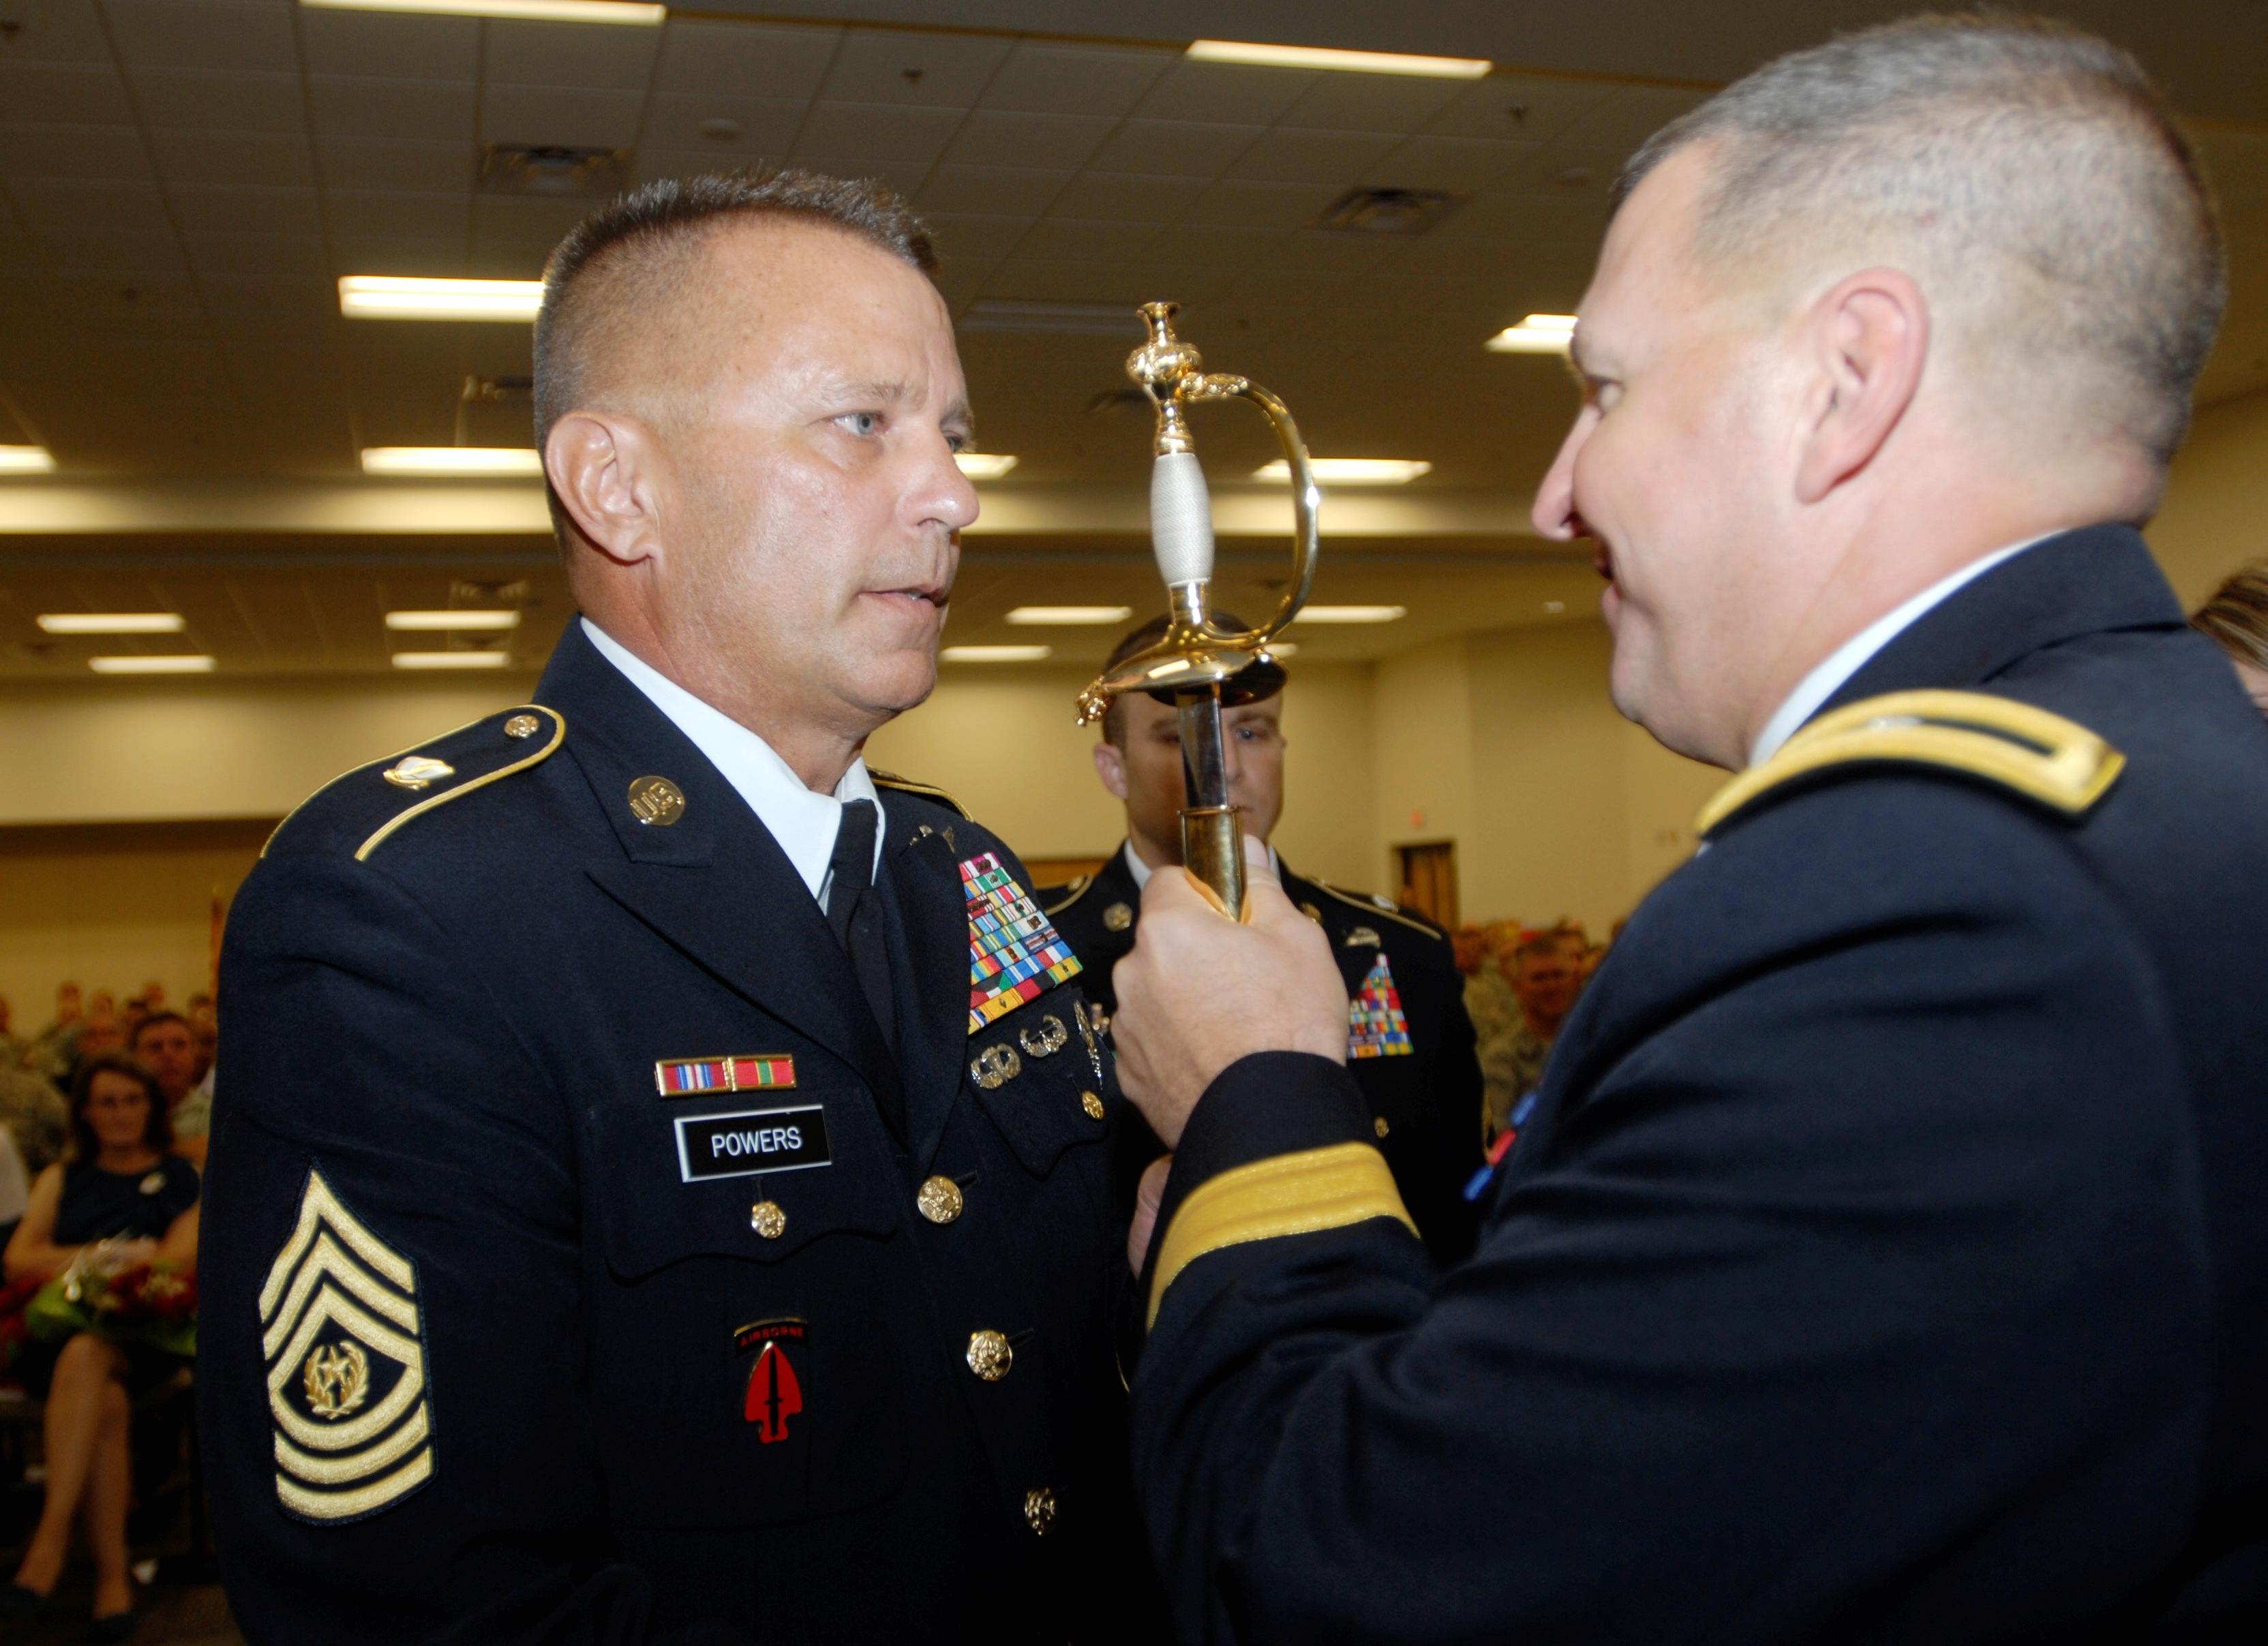 Command Sgt. Maj. Patrick Powers receives the Noncommissioned Officer's Sword